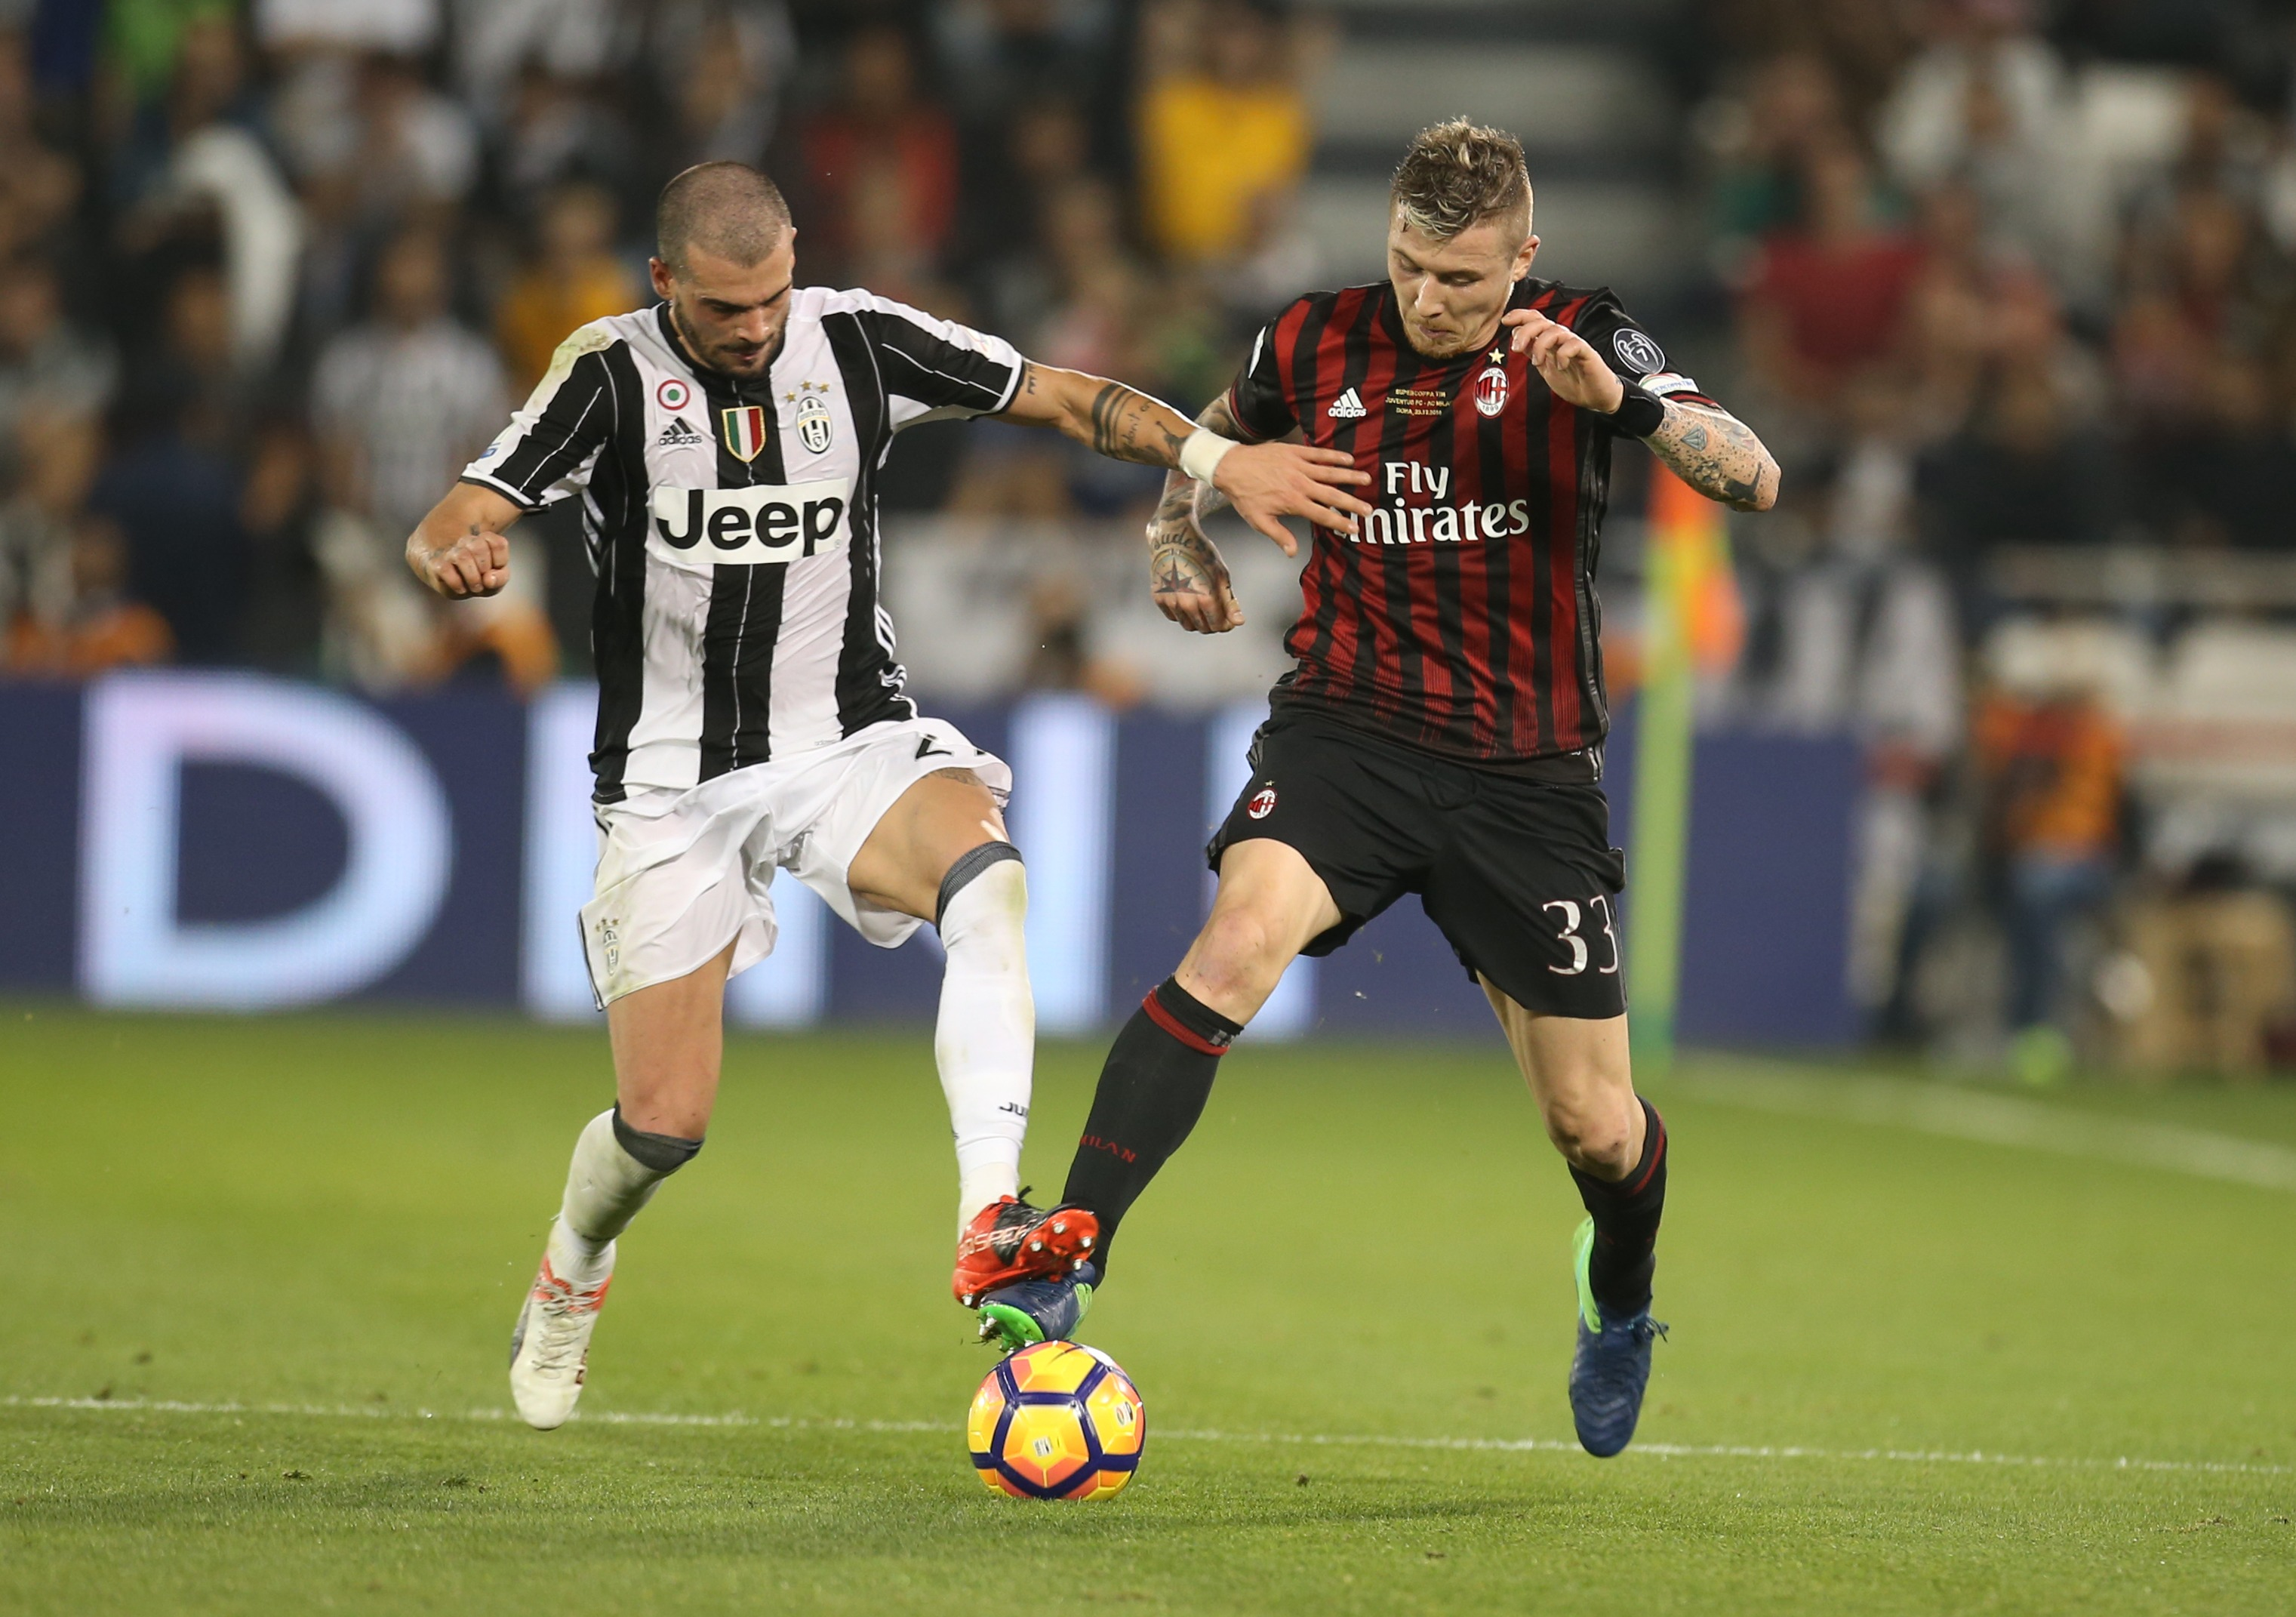 DOHA, QATAR - DECEMBER 23: Stefano Sturaro of Juventus FC in action against Juraj Kucka of AC Milan during the Supercoppa TIM Doha 2016 match between Juventus FC and AC Milan at the Jassim Bin Hamad Stadium on December 23, 2016 in Doha, Qatar. (Photo by AK BijuRaj/Getty Images)